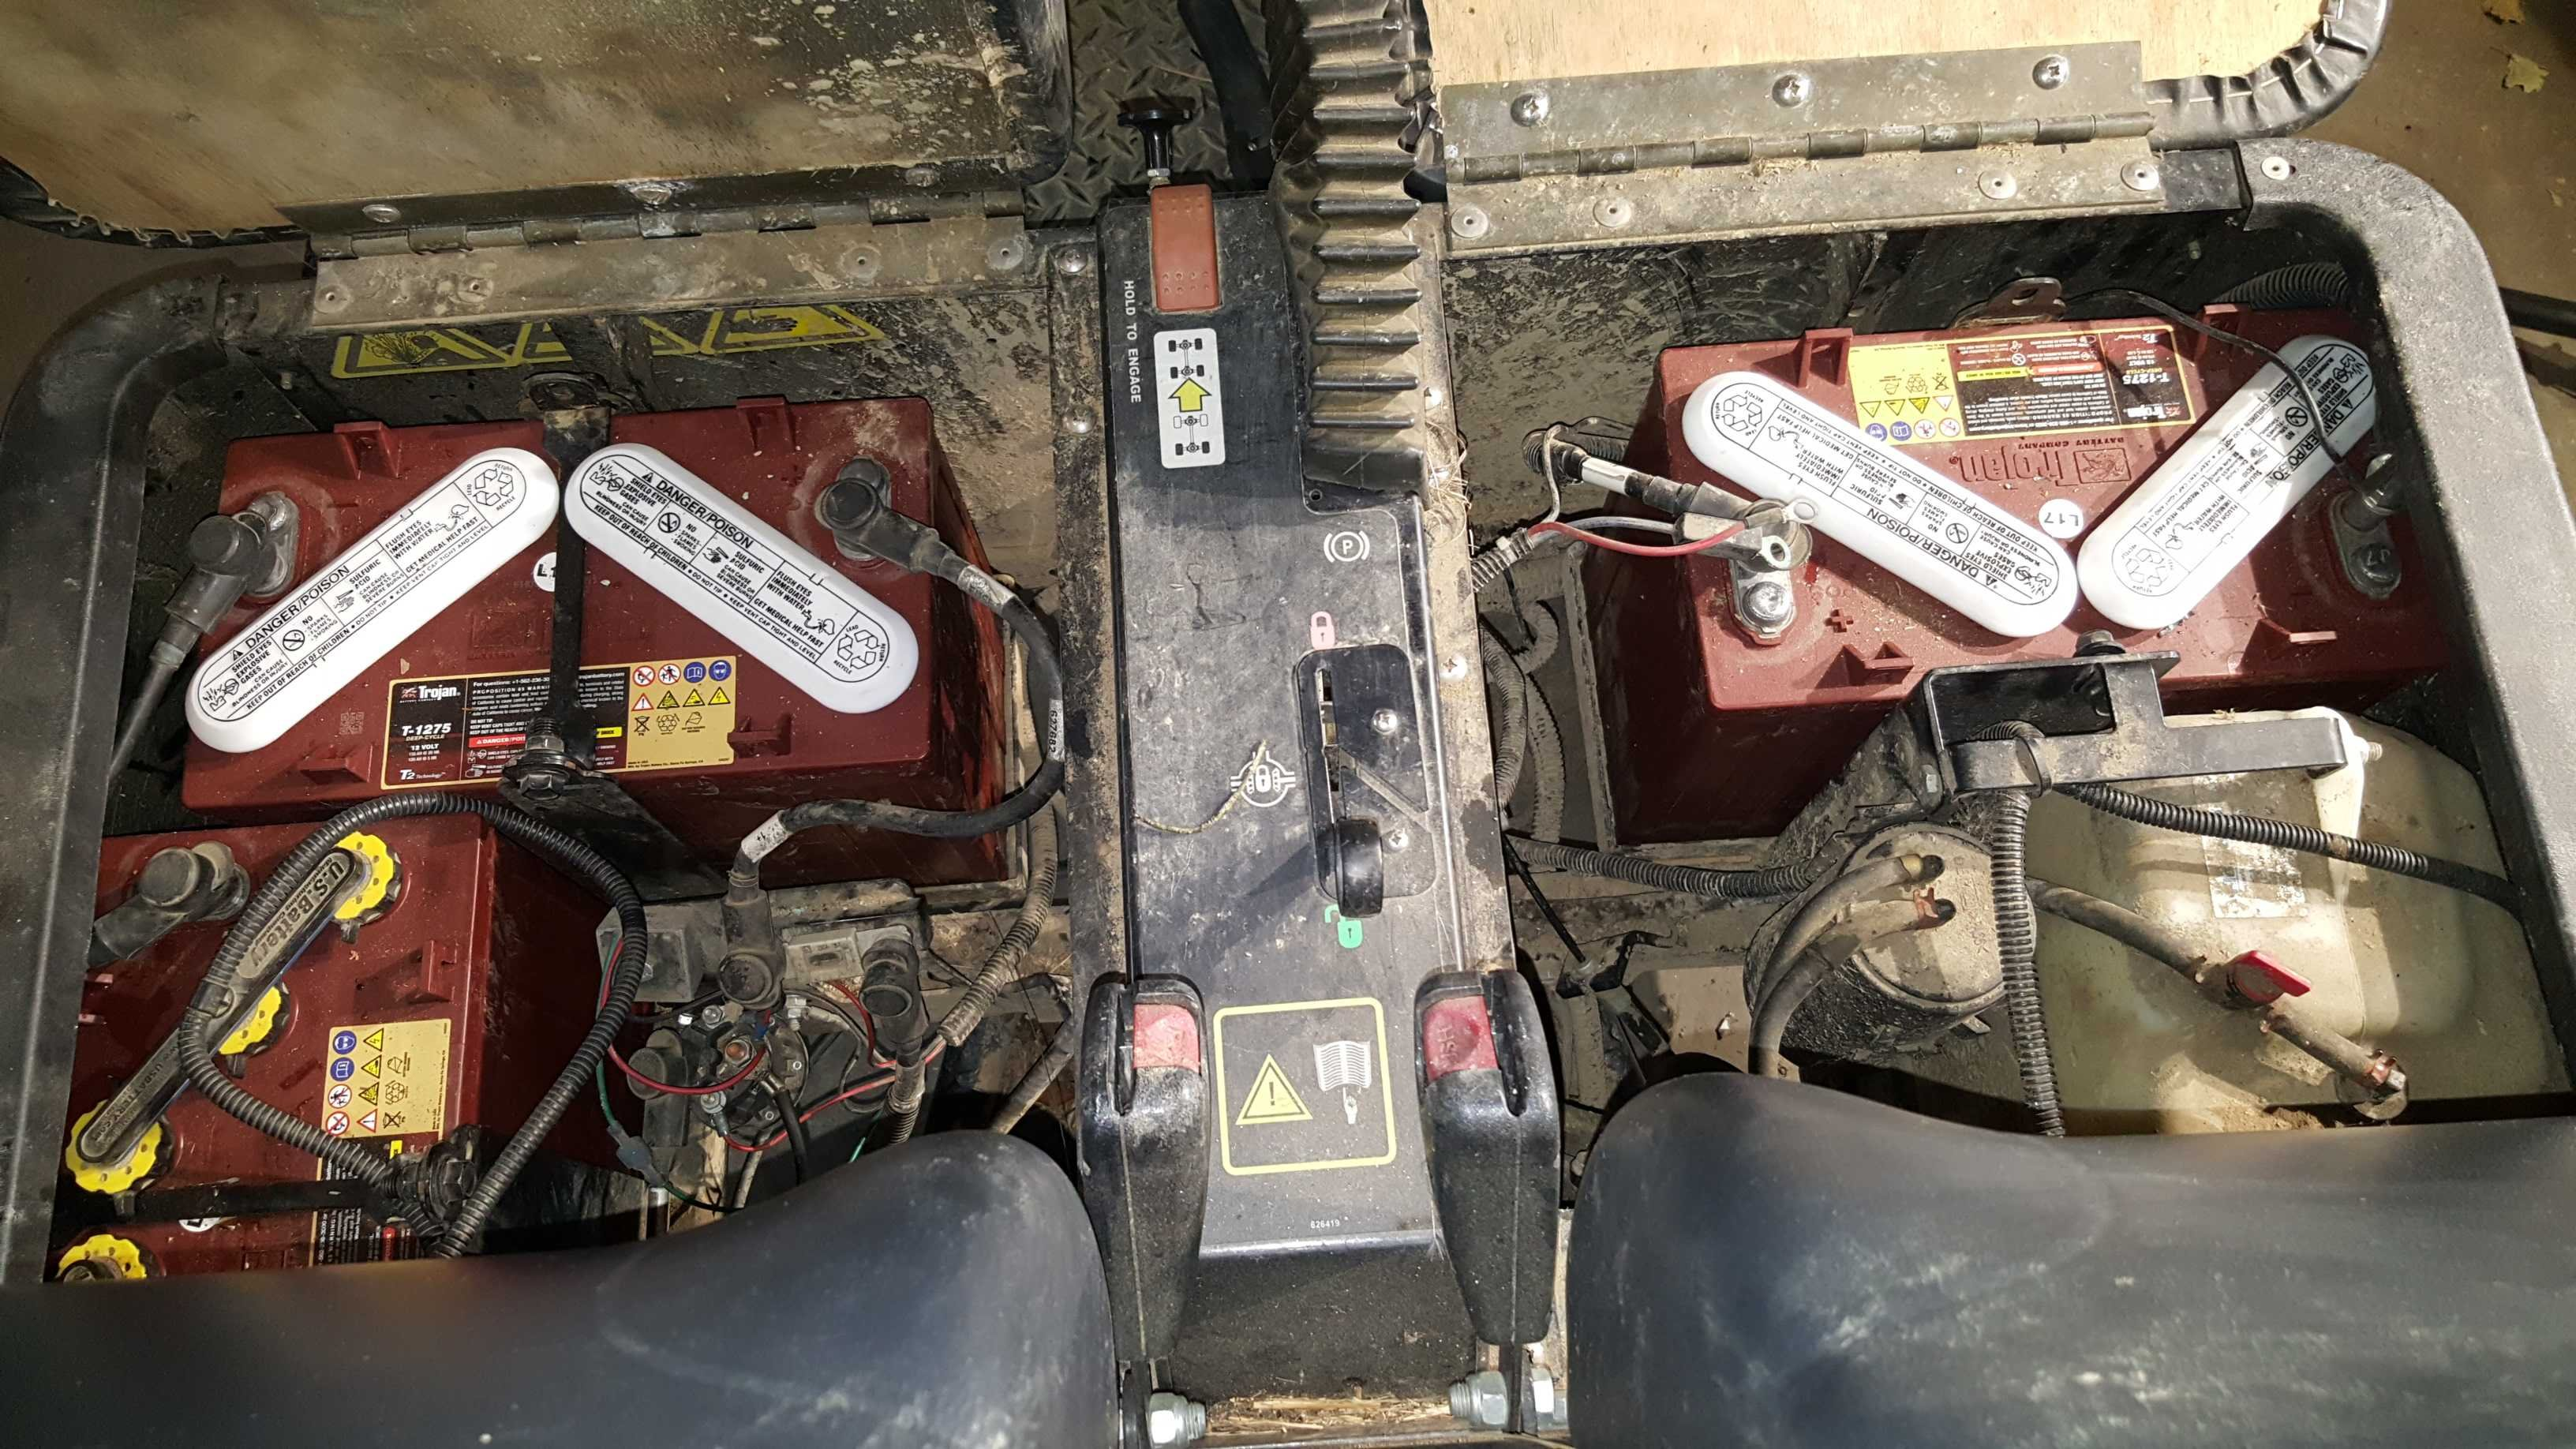 Bad Boy Buggy Ambush Wiring Diagram - Wiring Diagram Name Bad Boy Buggy Wiring Schematic on bad boy buggy manual, bad boy buggy maintenance, bad boy buggy battery, bad boy buggy troubleshooting, bad boy buggy forum,